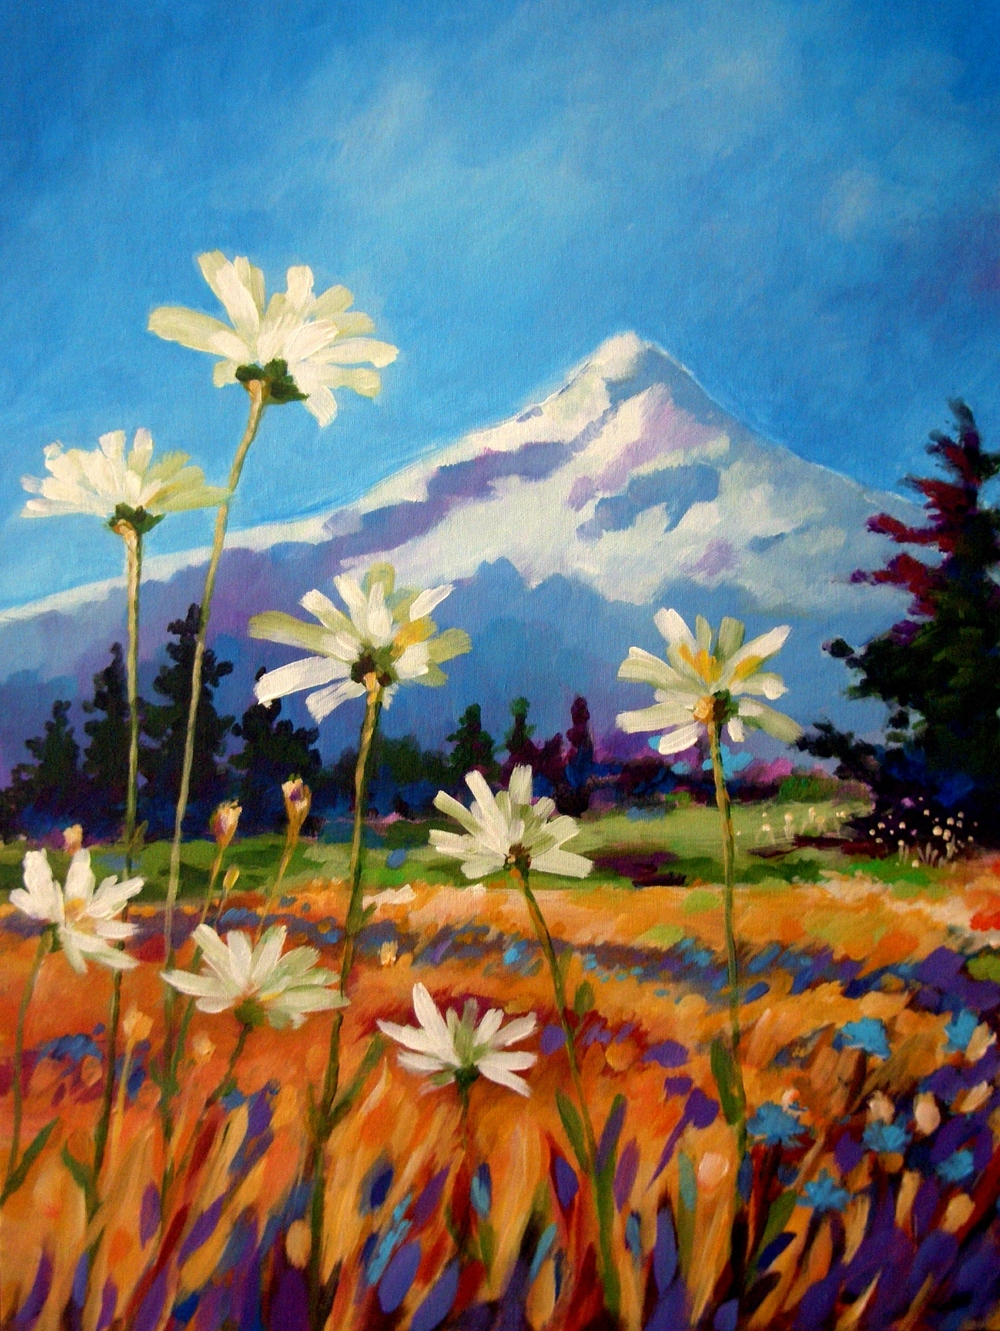 This first painting was created from my head. I was painting Mt. Hood and wanted to play with crazy grass colors and added the daisies to created interest.  20x24 - sold from Pine Street Bakery.